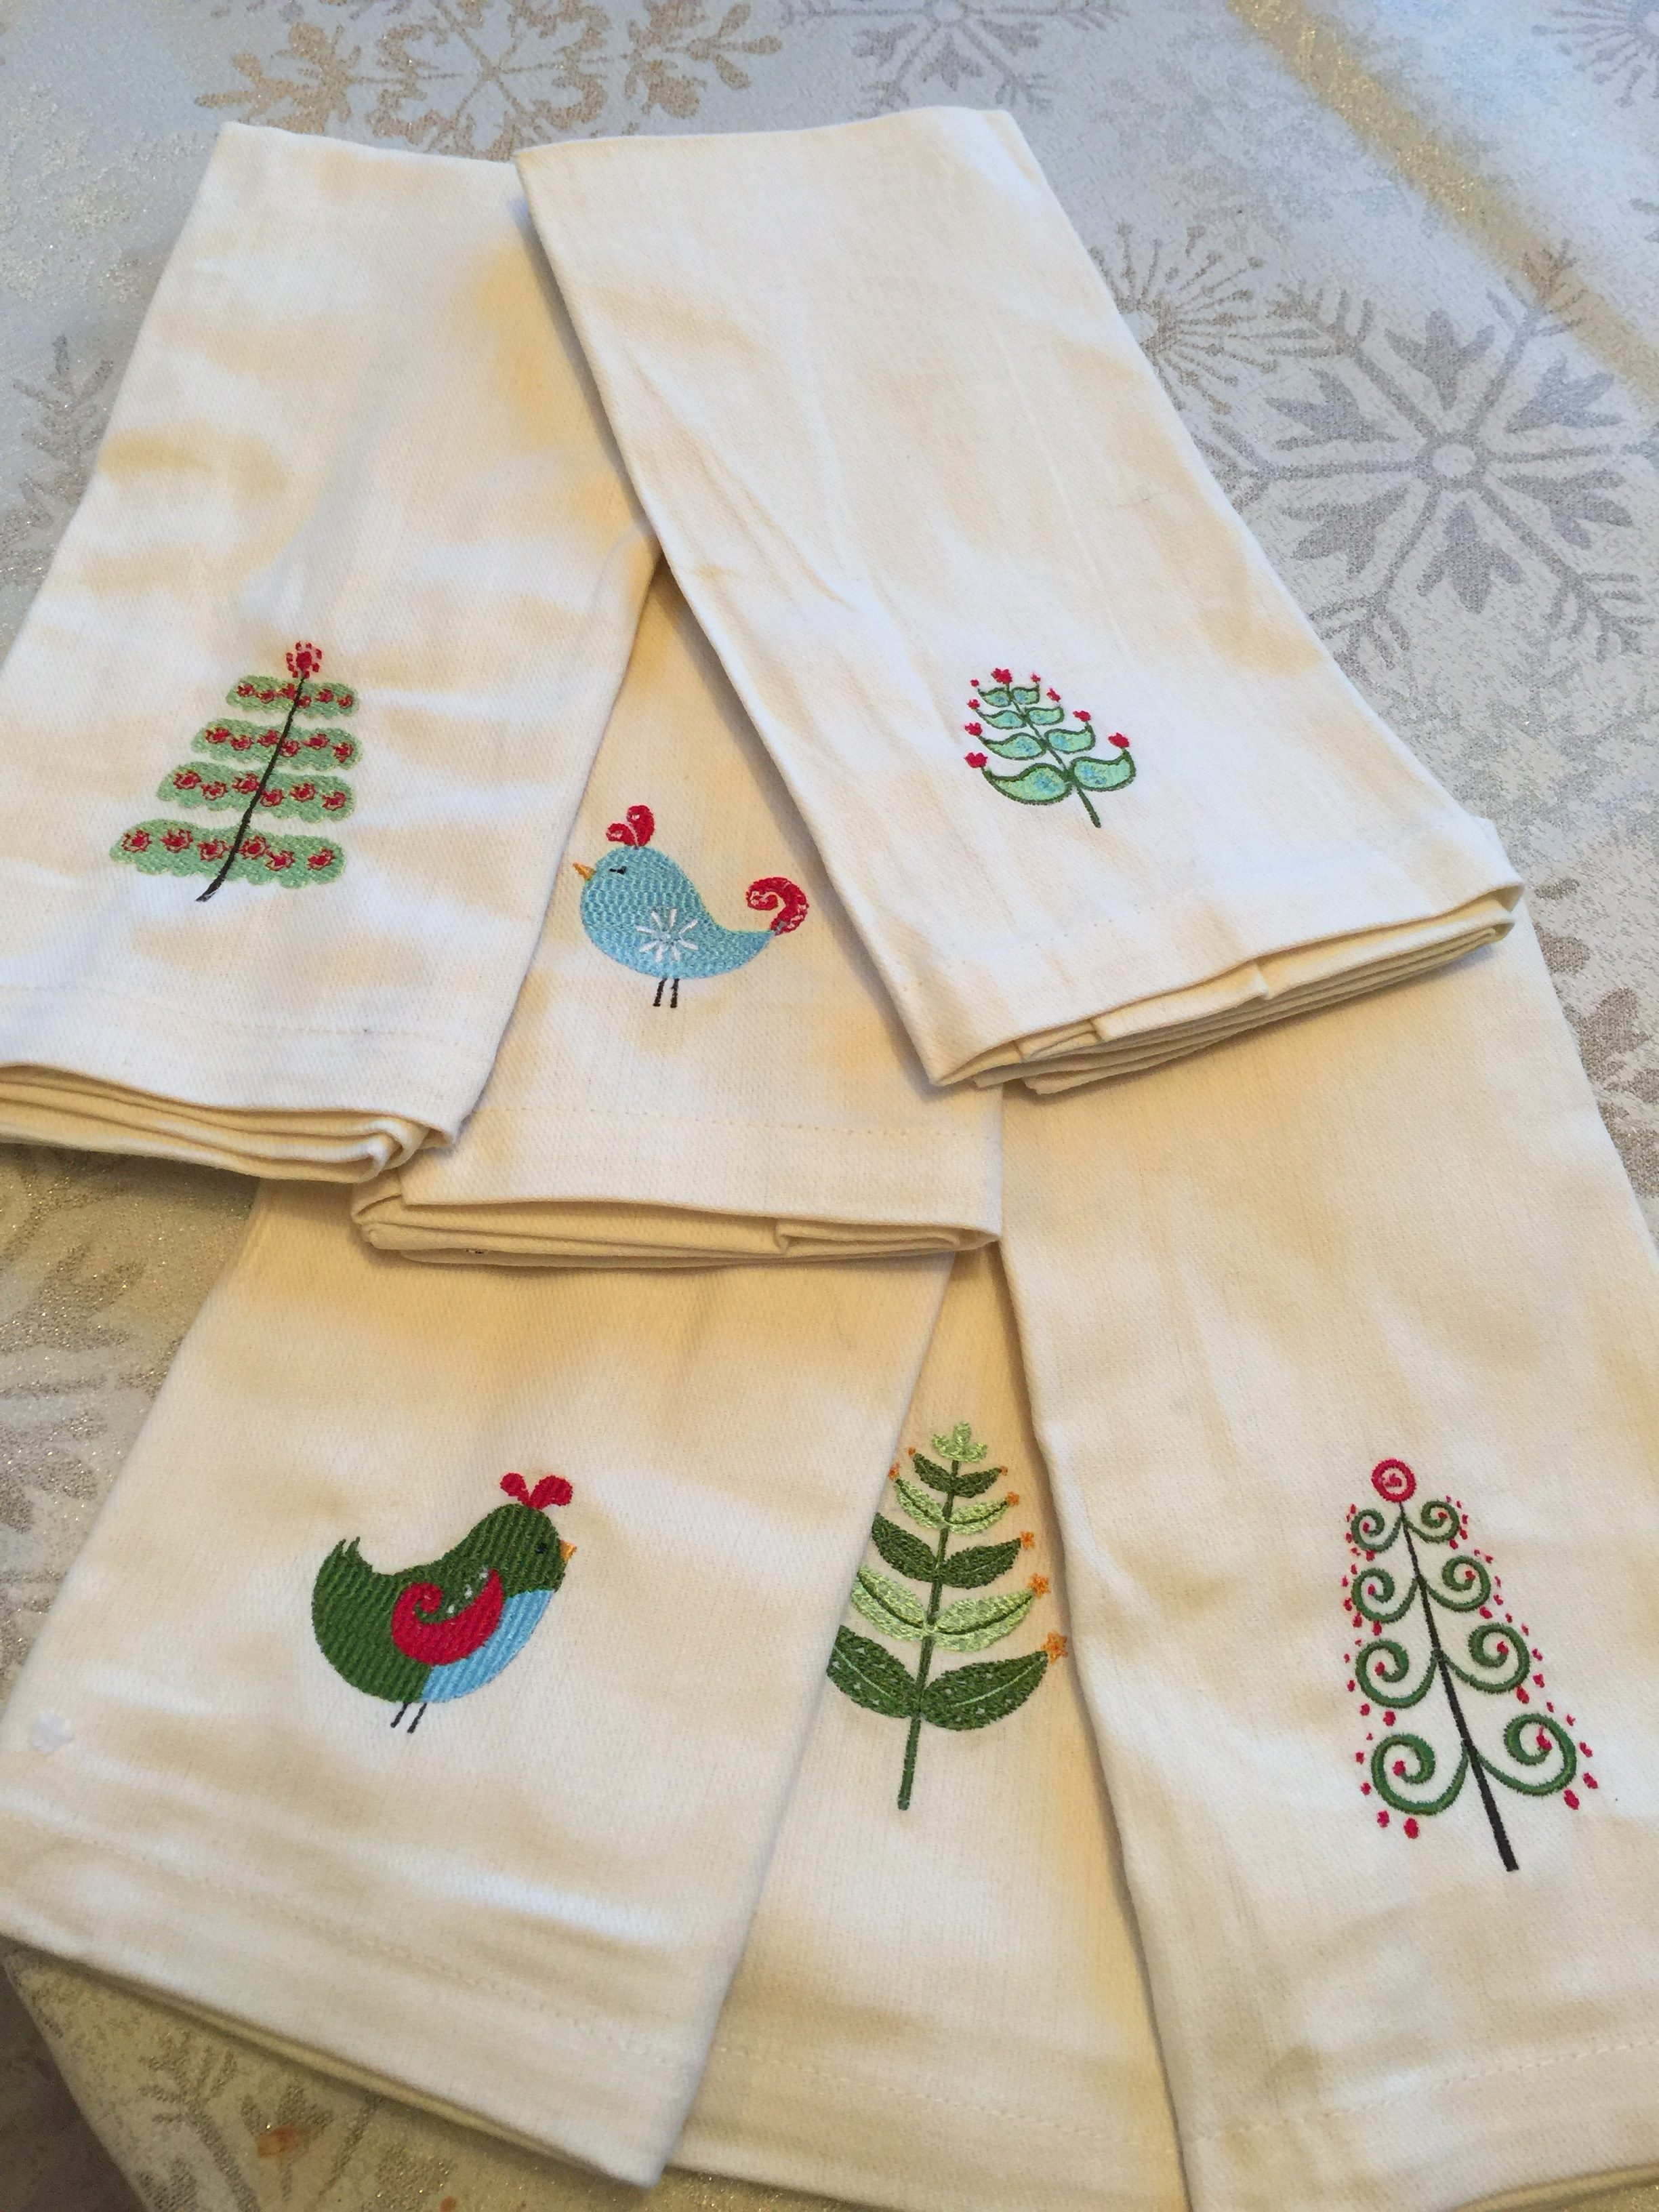 Breezy Lane Embroidery Seams By Erin